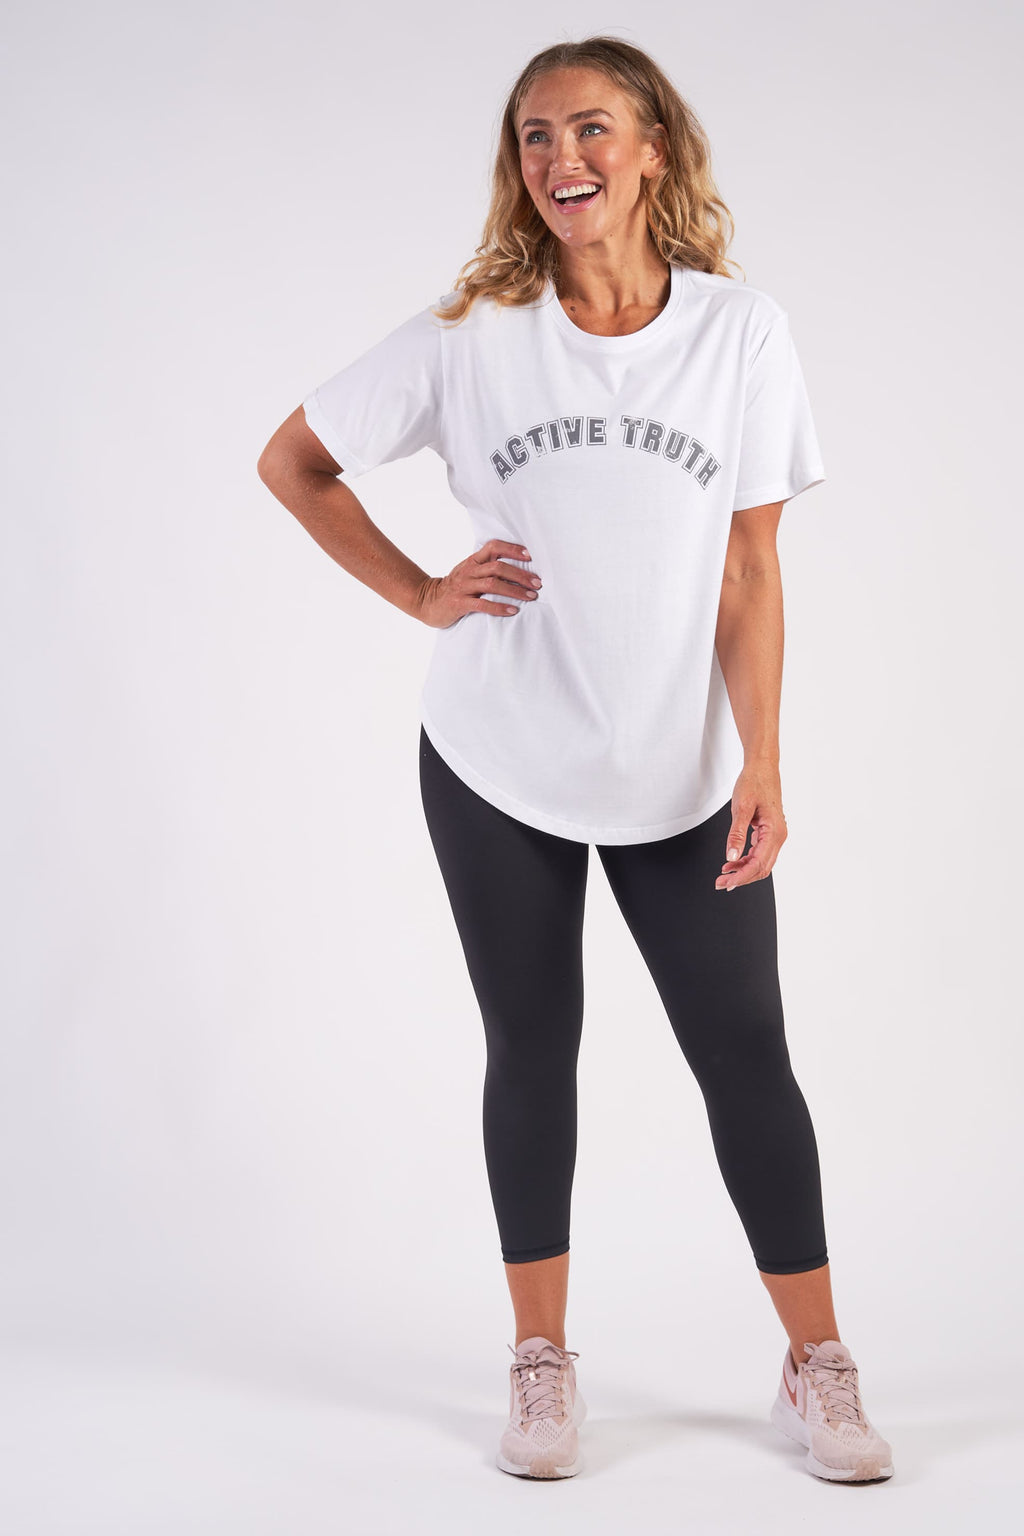 Basic Crew Neck Organic Cotton T-Shirt - White from Active Truth USA